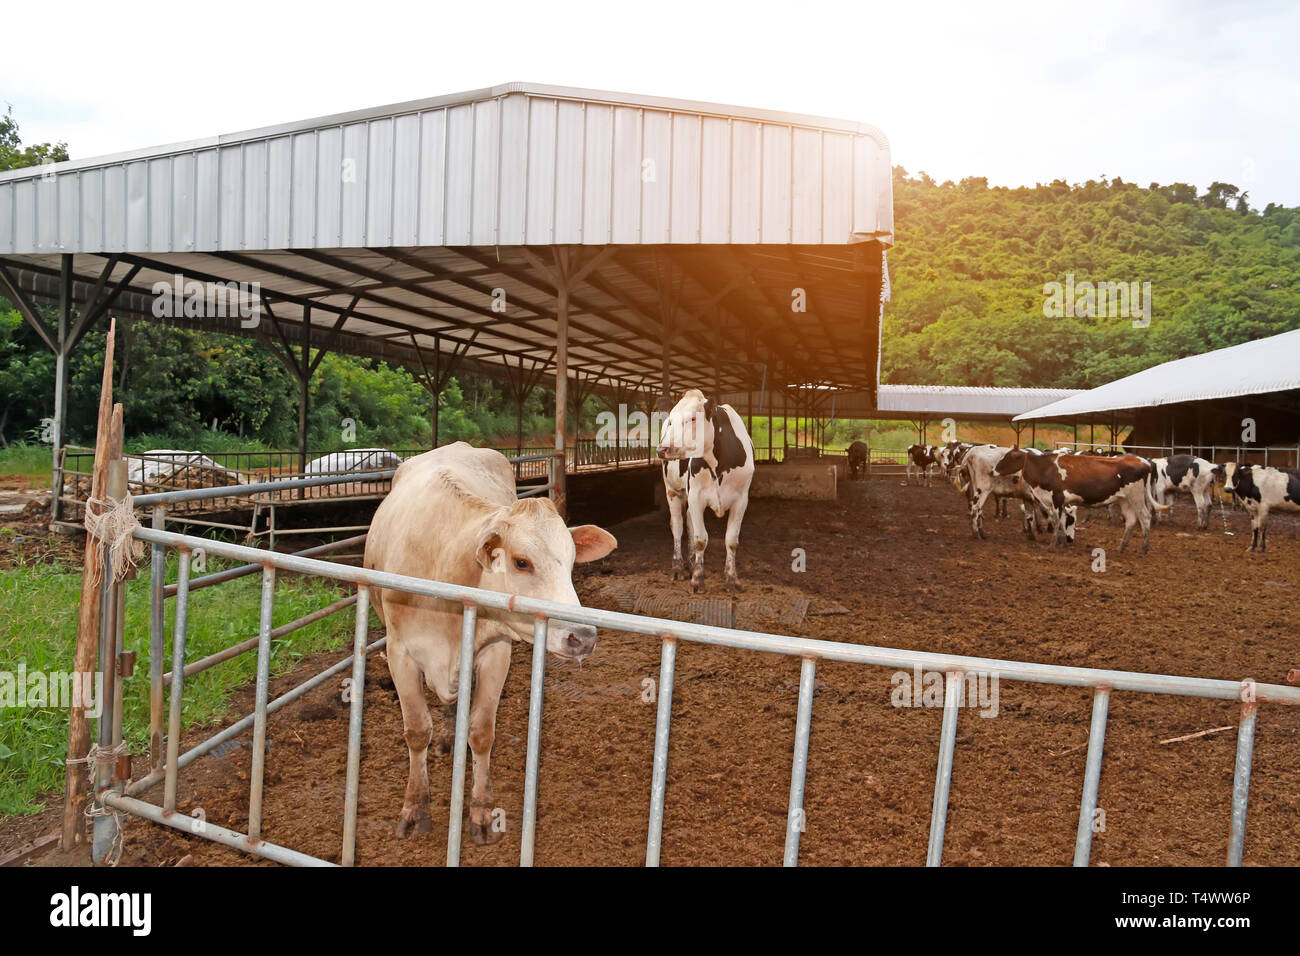 agriculture industry, farming and animal husbandry herd of cows on farm - Stock Image